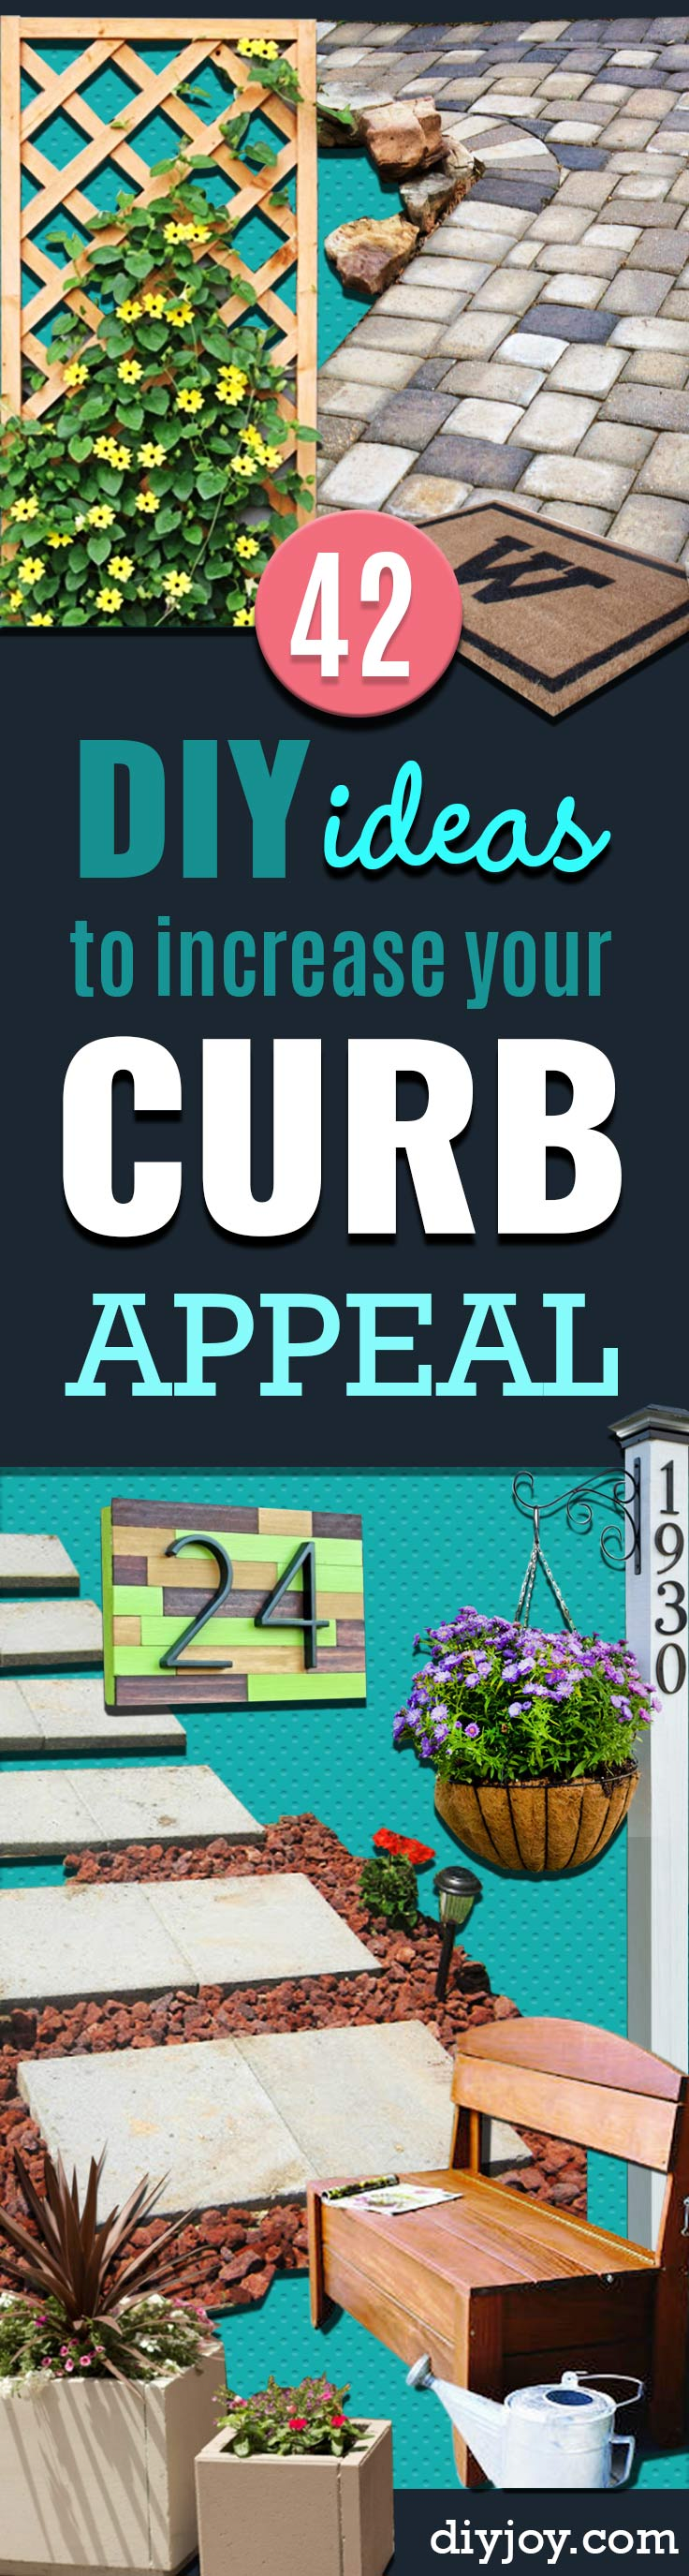 diy home improvement ideas for curb appeal - Creative Ways to Increase Curb Appeal on A Budget - Cheap and Easy Ideas for Upgrading Your Front Porch, Landscaping, Driveways, Garage Doors, Brick and Home Exteriors. Add Window Boxes, House Numbers, Mailboxes and Yard Makeovers